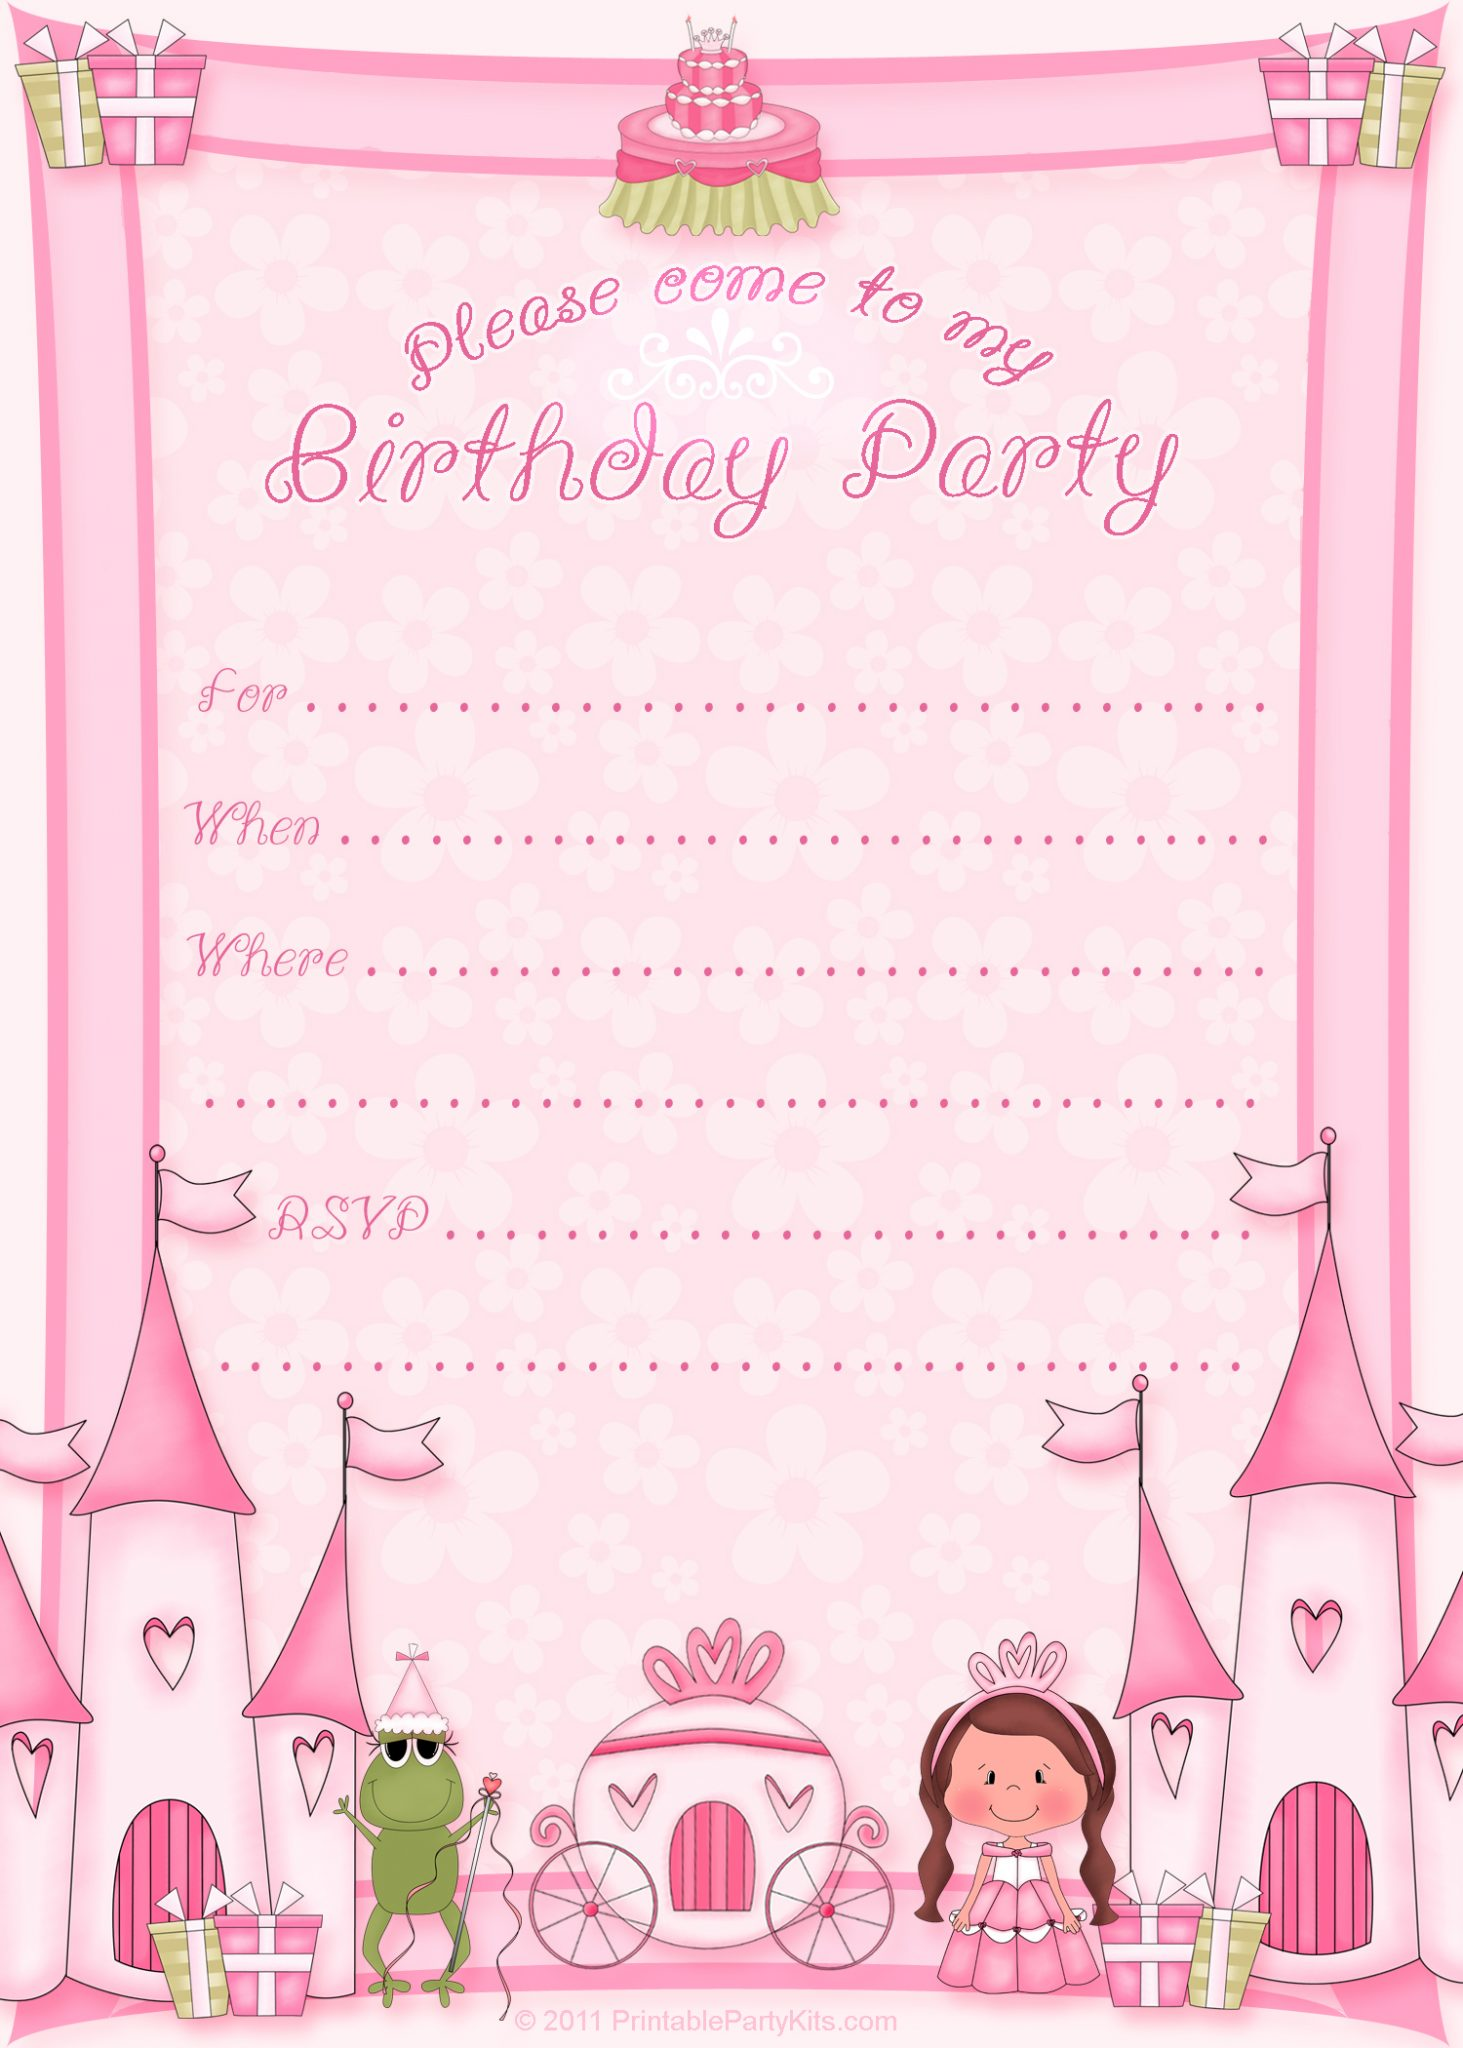 Free Birthday Invitation Templates You Will Love These - Birthday invitation free download